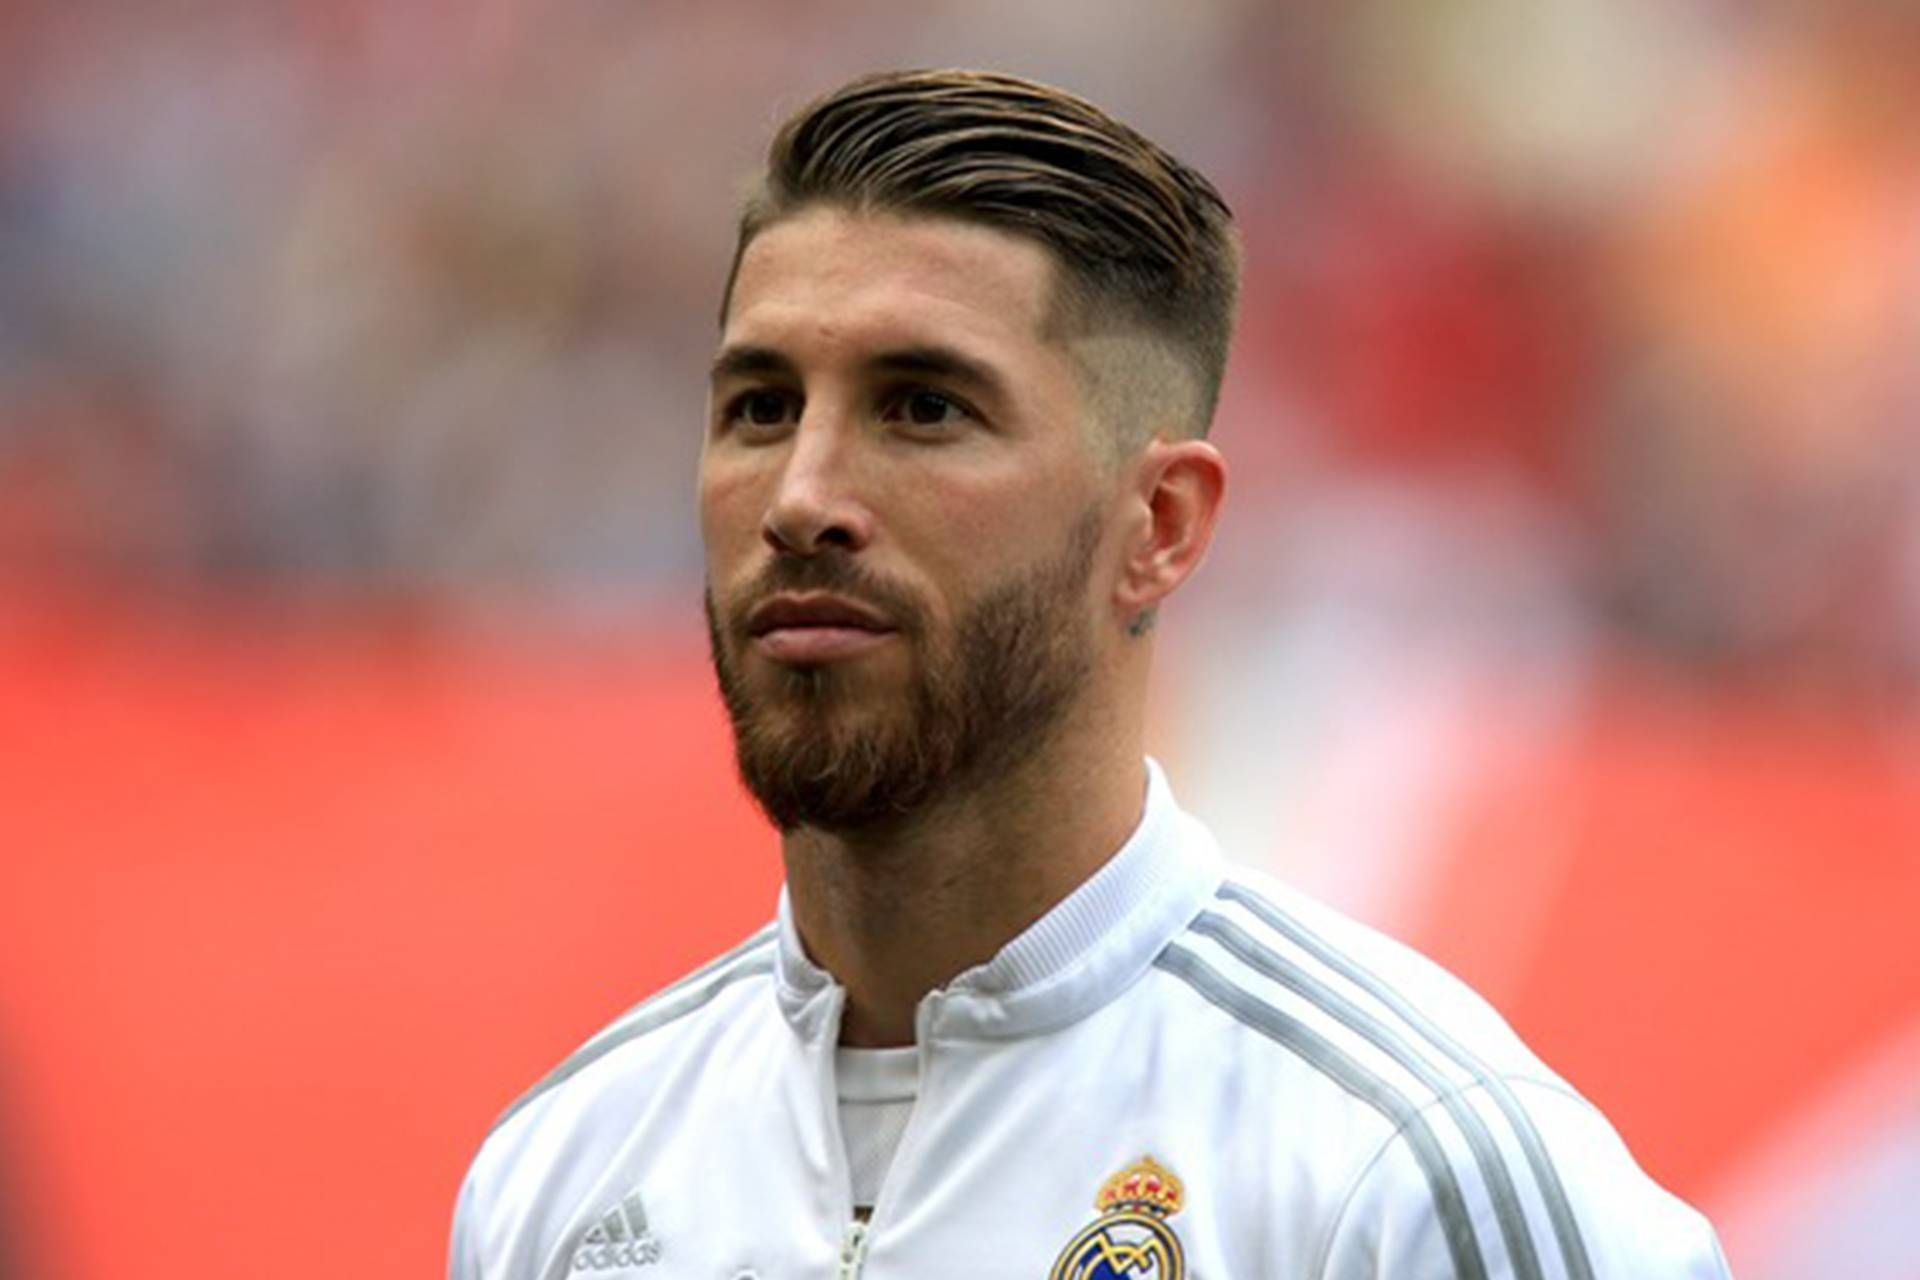 Sergio Ramos Haircut